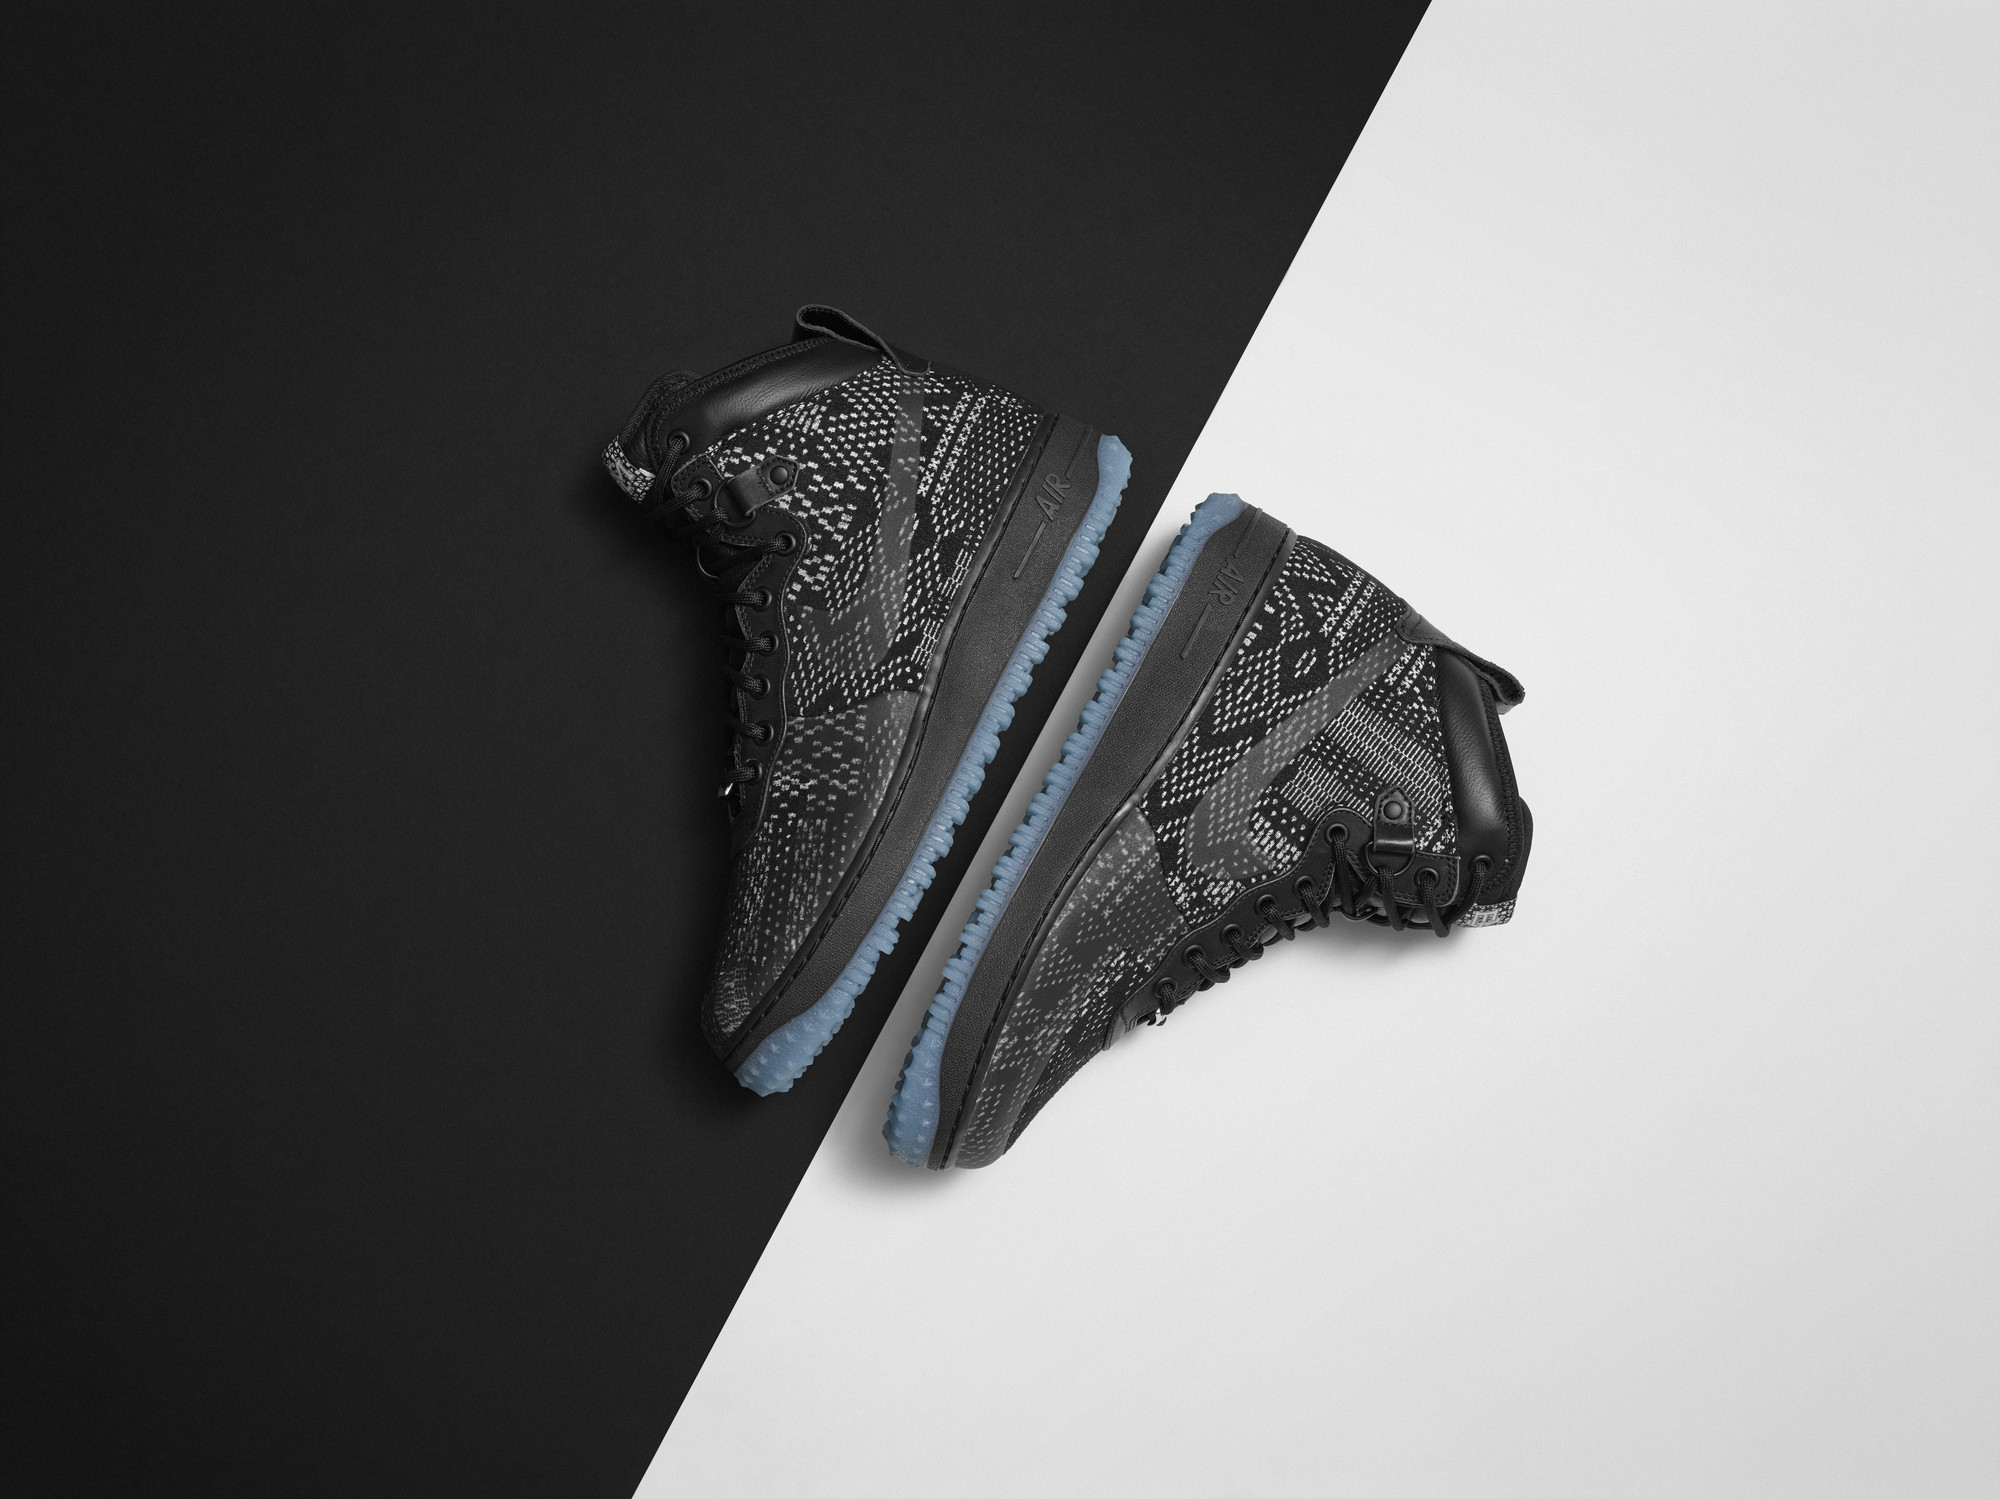 Nike Air Force 1 Mois Histoire Noire 2015 Crampons